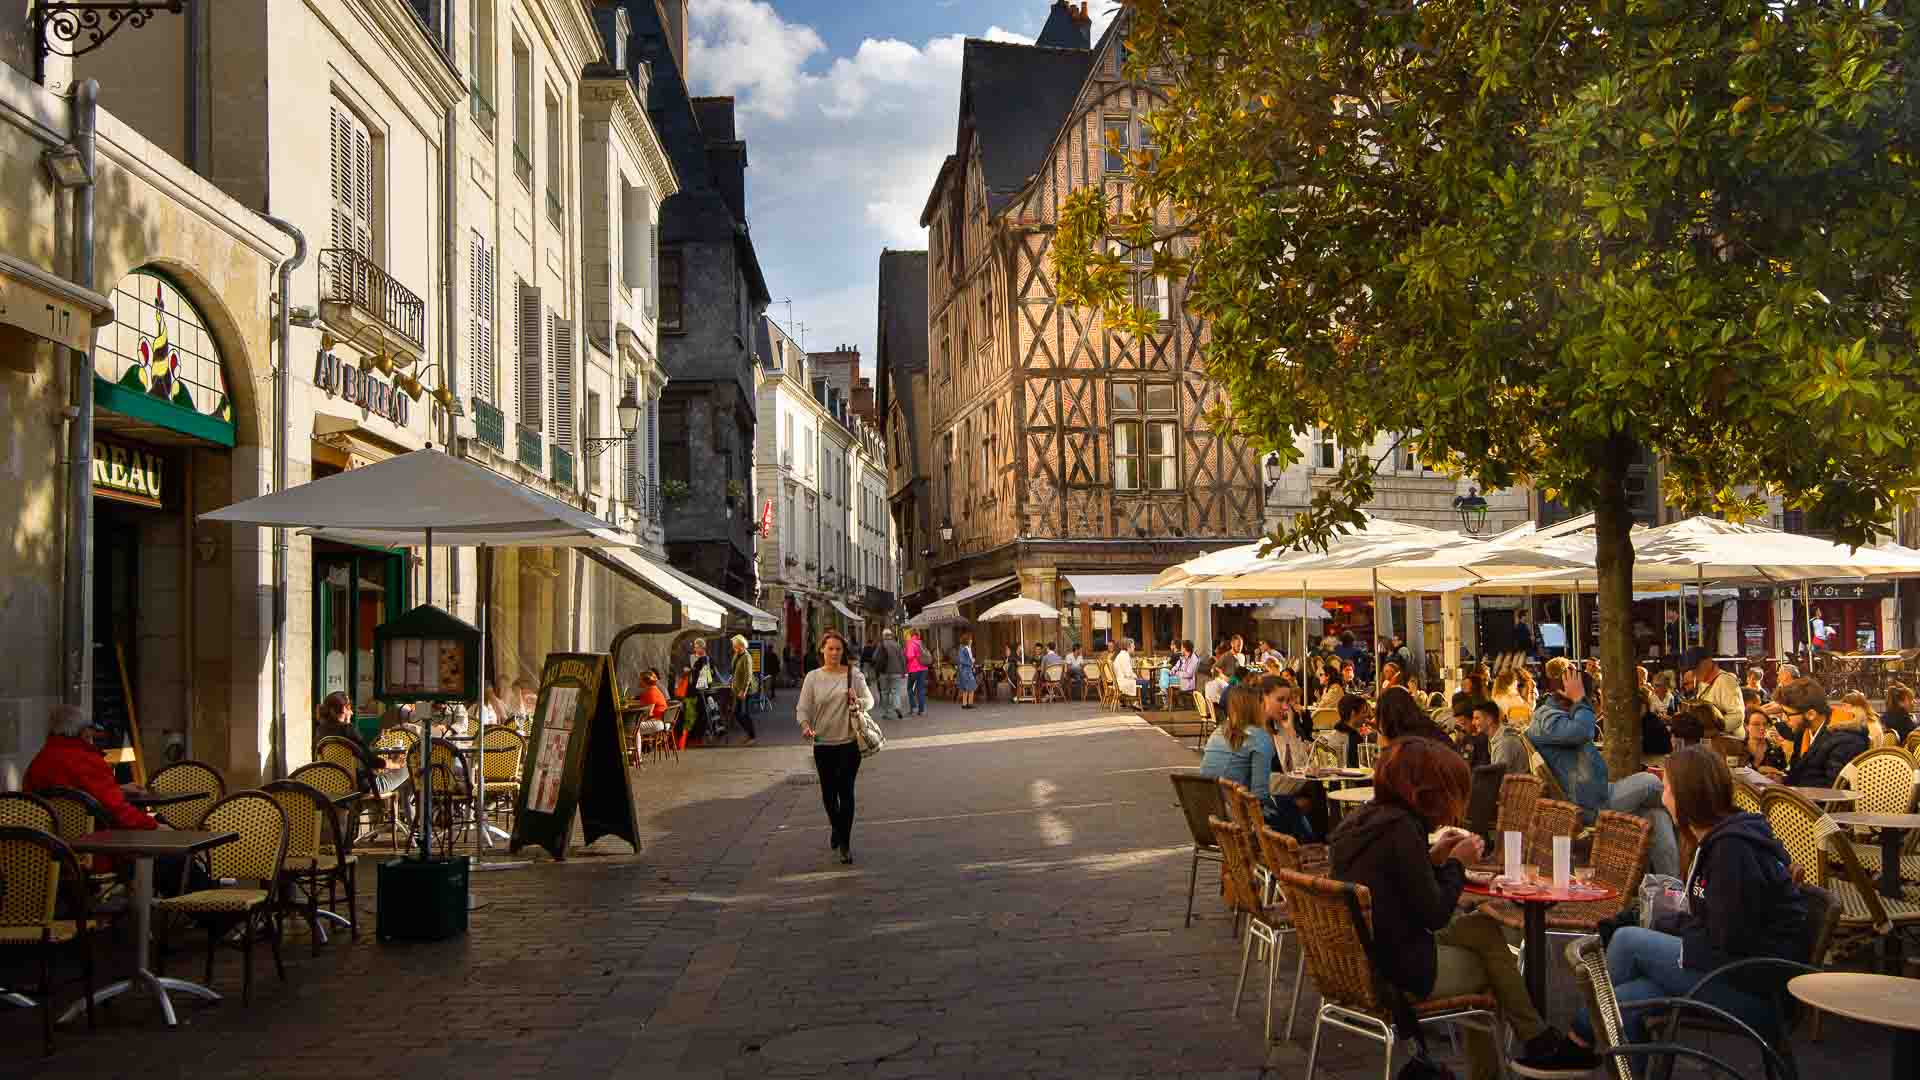 Place Plumereau in Tours.